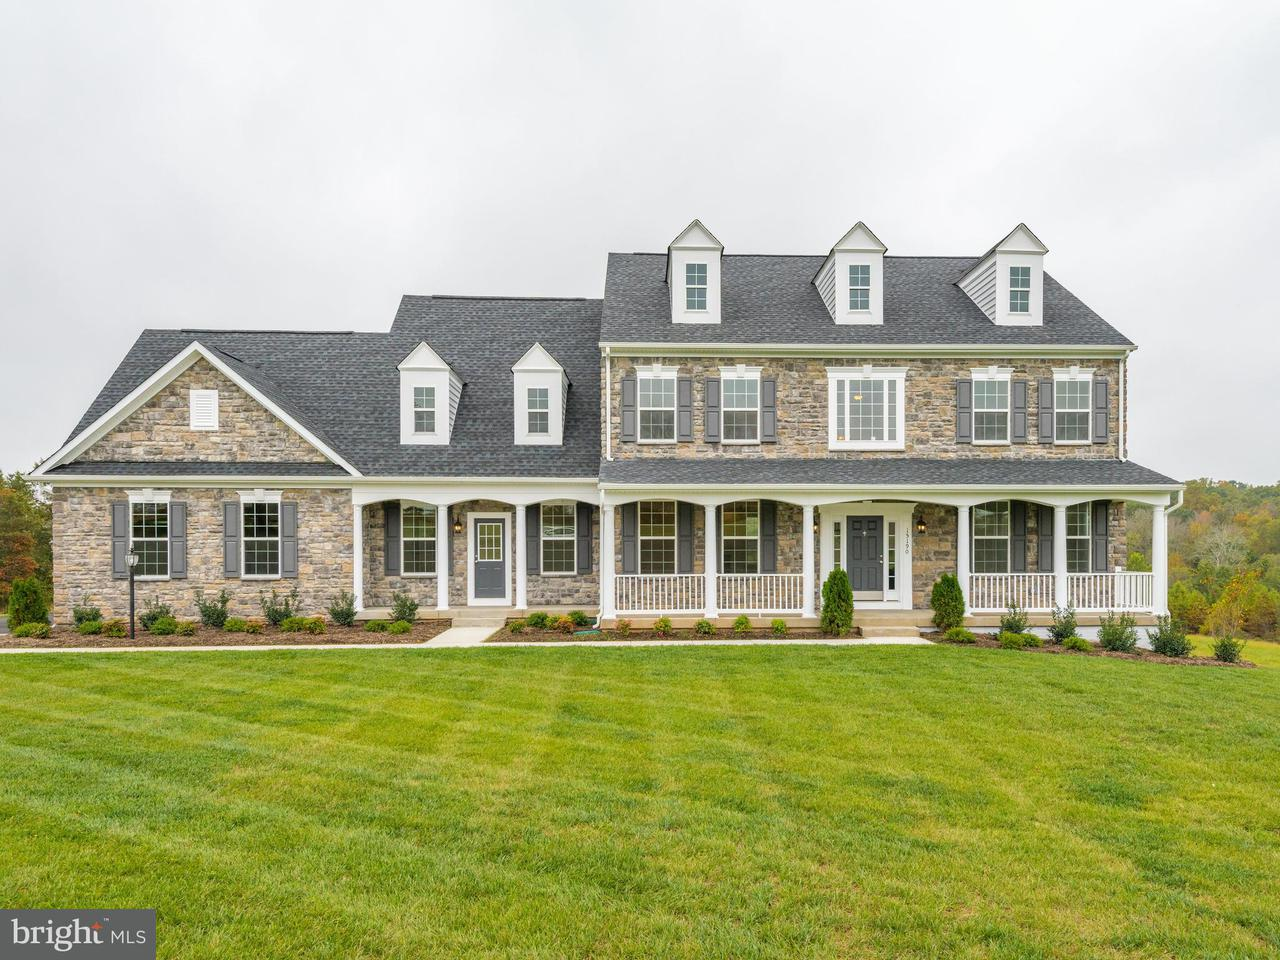 Single Family Home for Sale at 15190 OMEGA Court 15190 OMEGA Court Waterford, Virginia 20197 United States